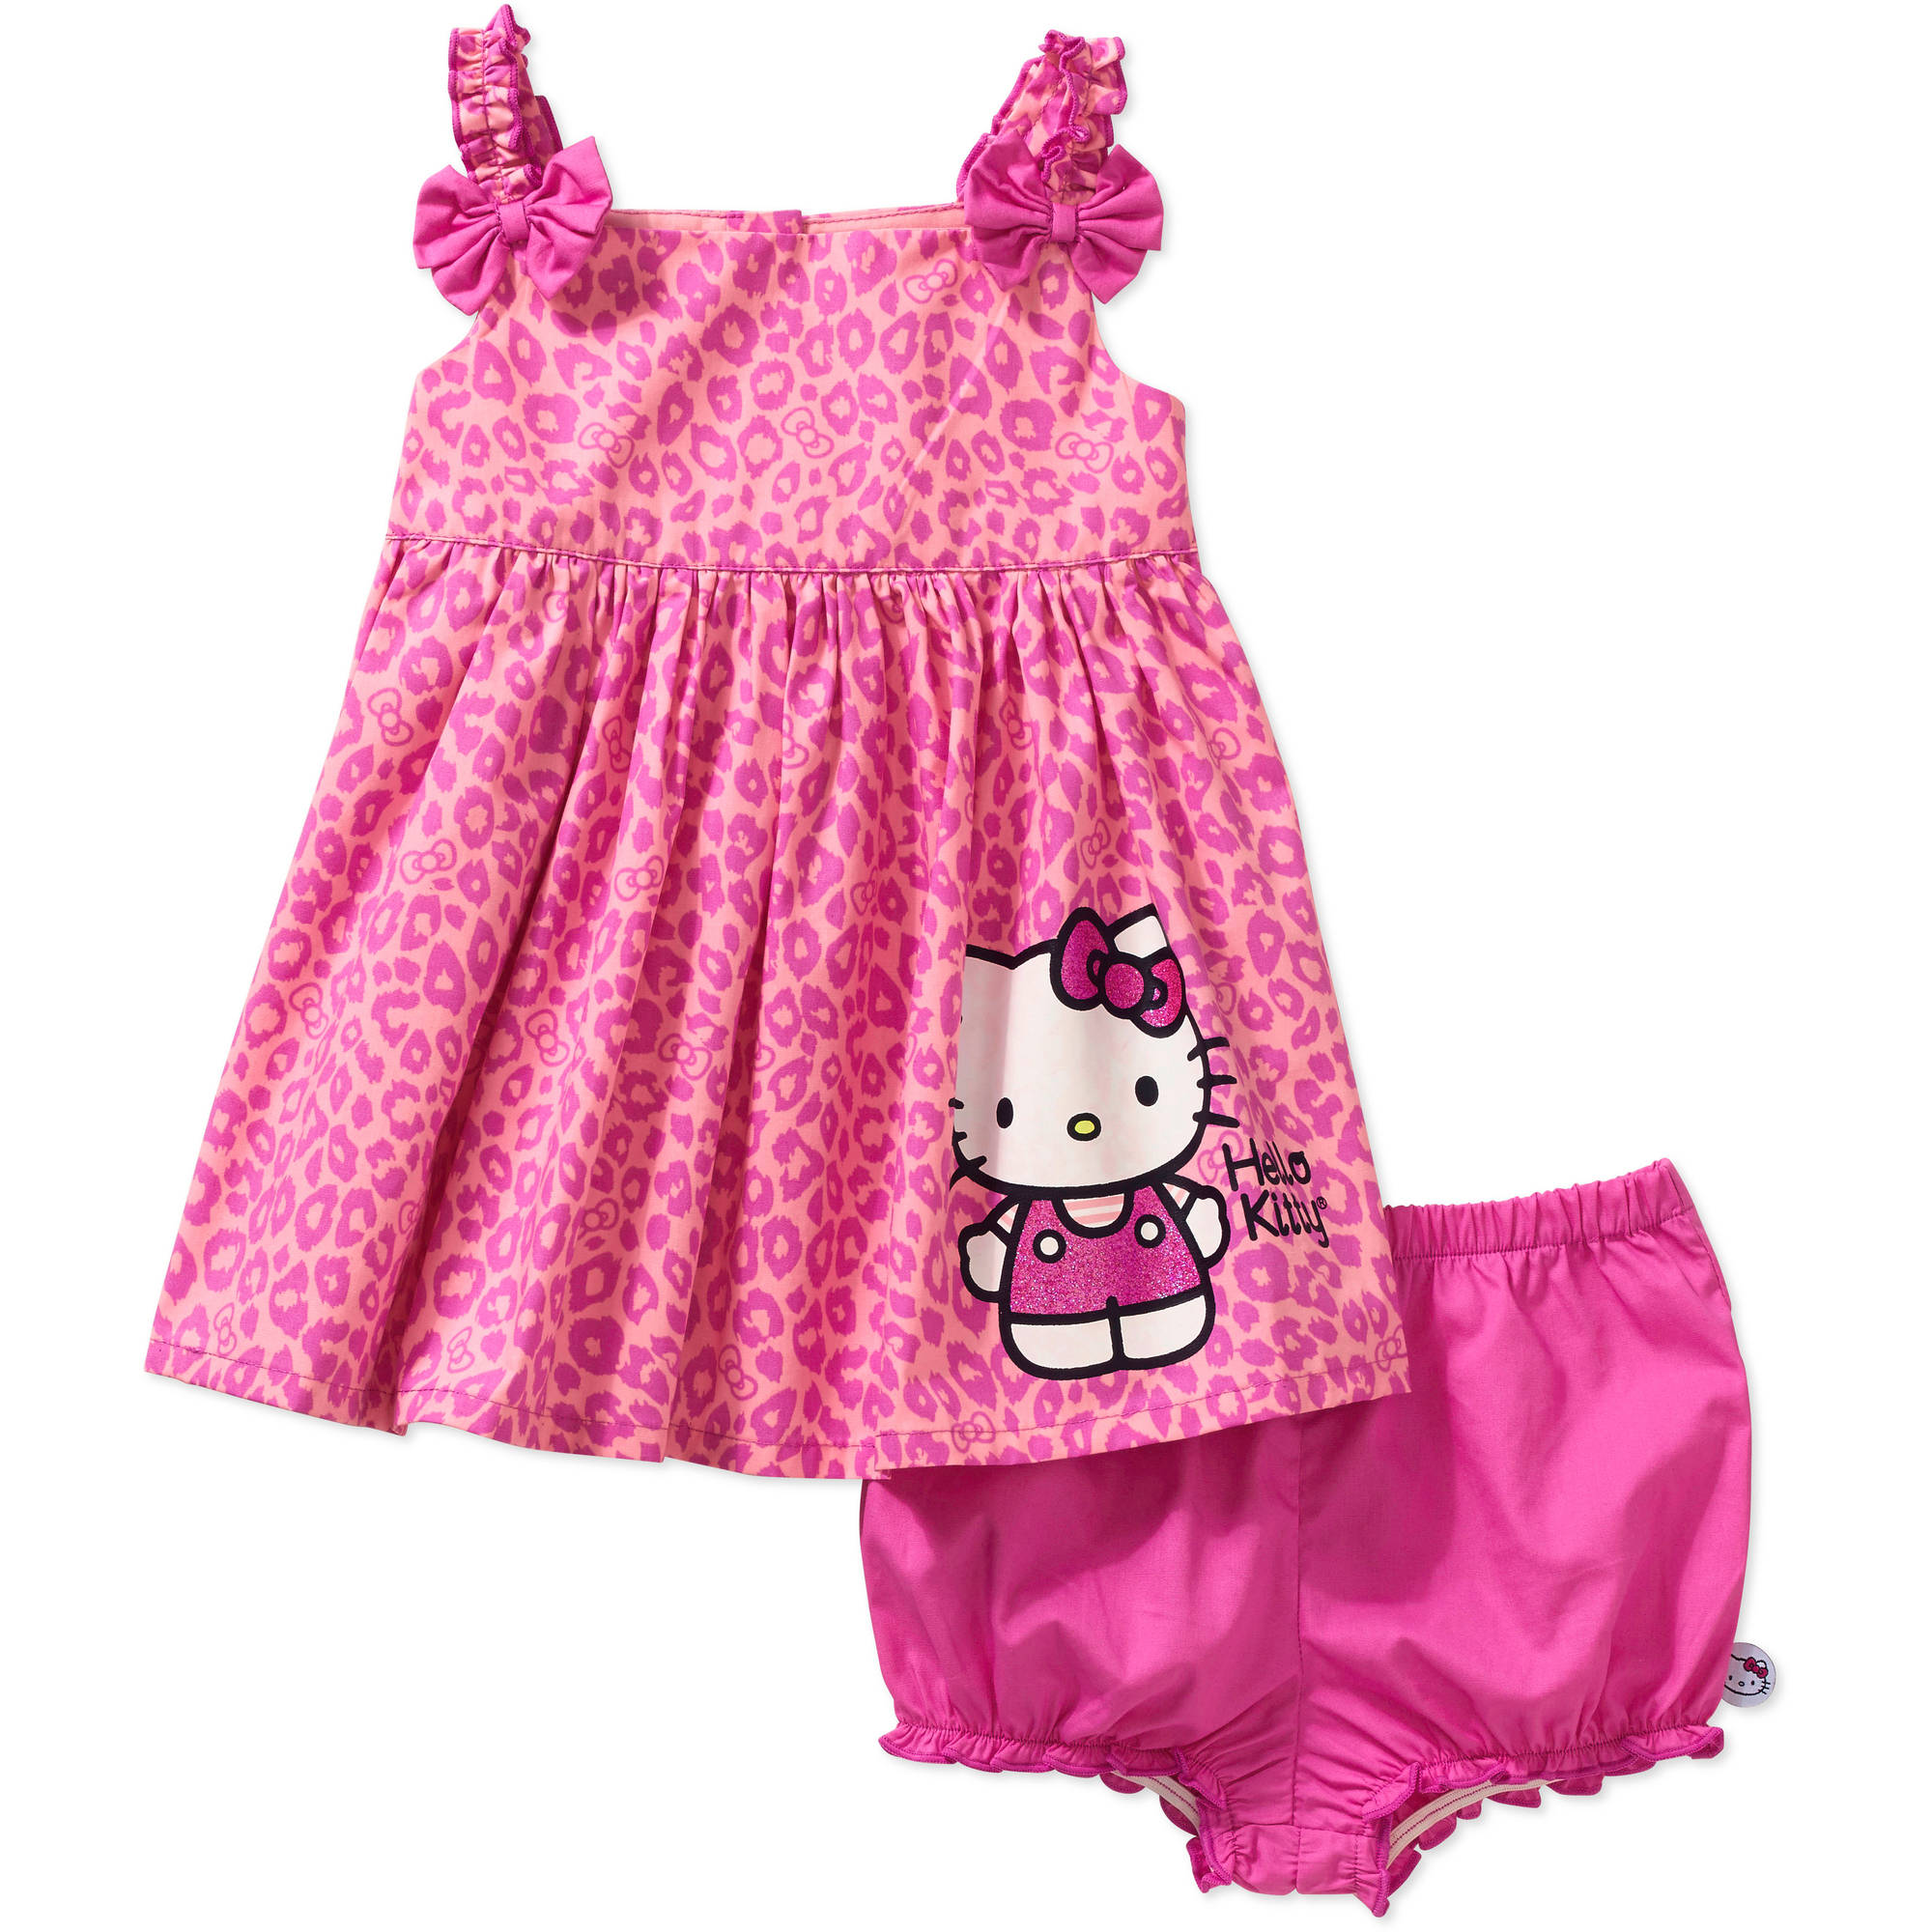 Hello Kitty Newborn Baby Girls' Woven Sundress 2-Piece Set